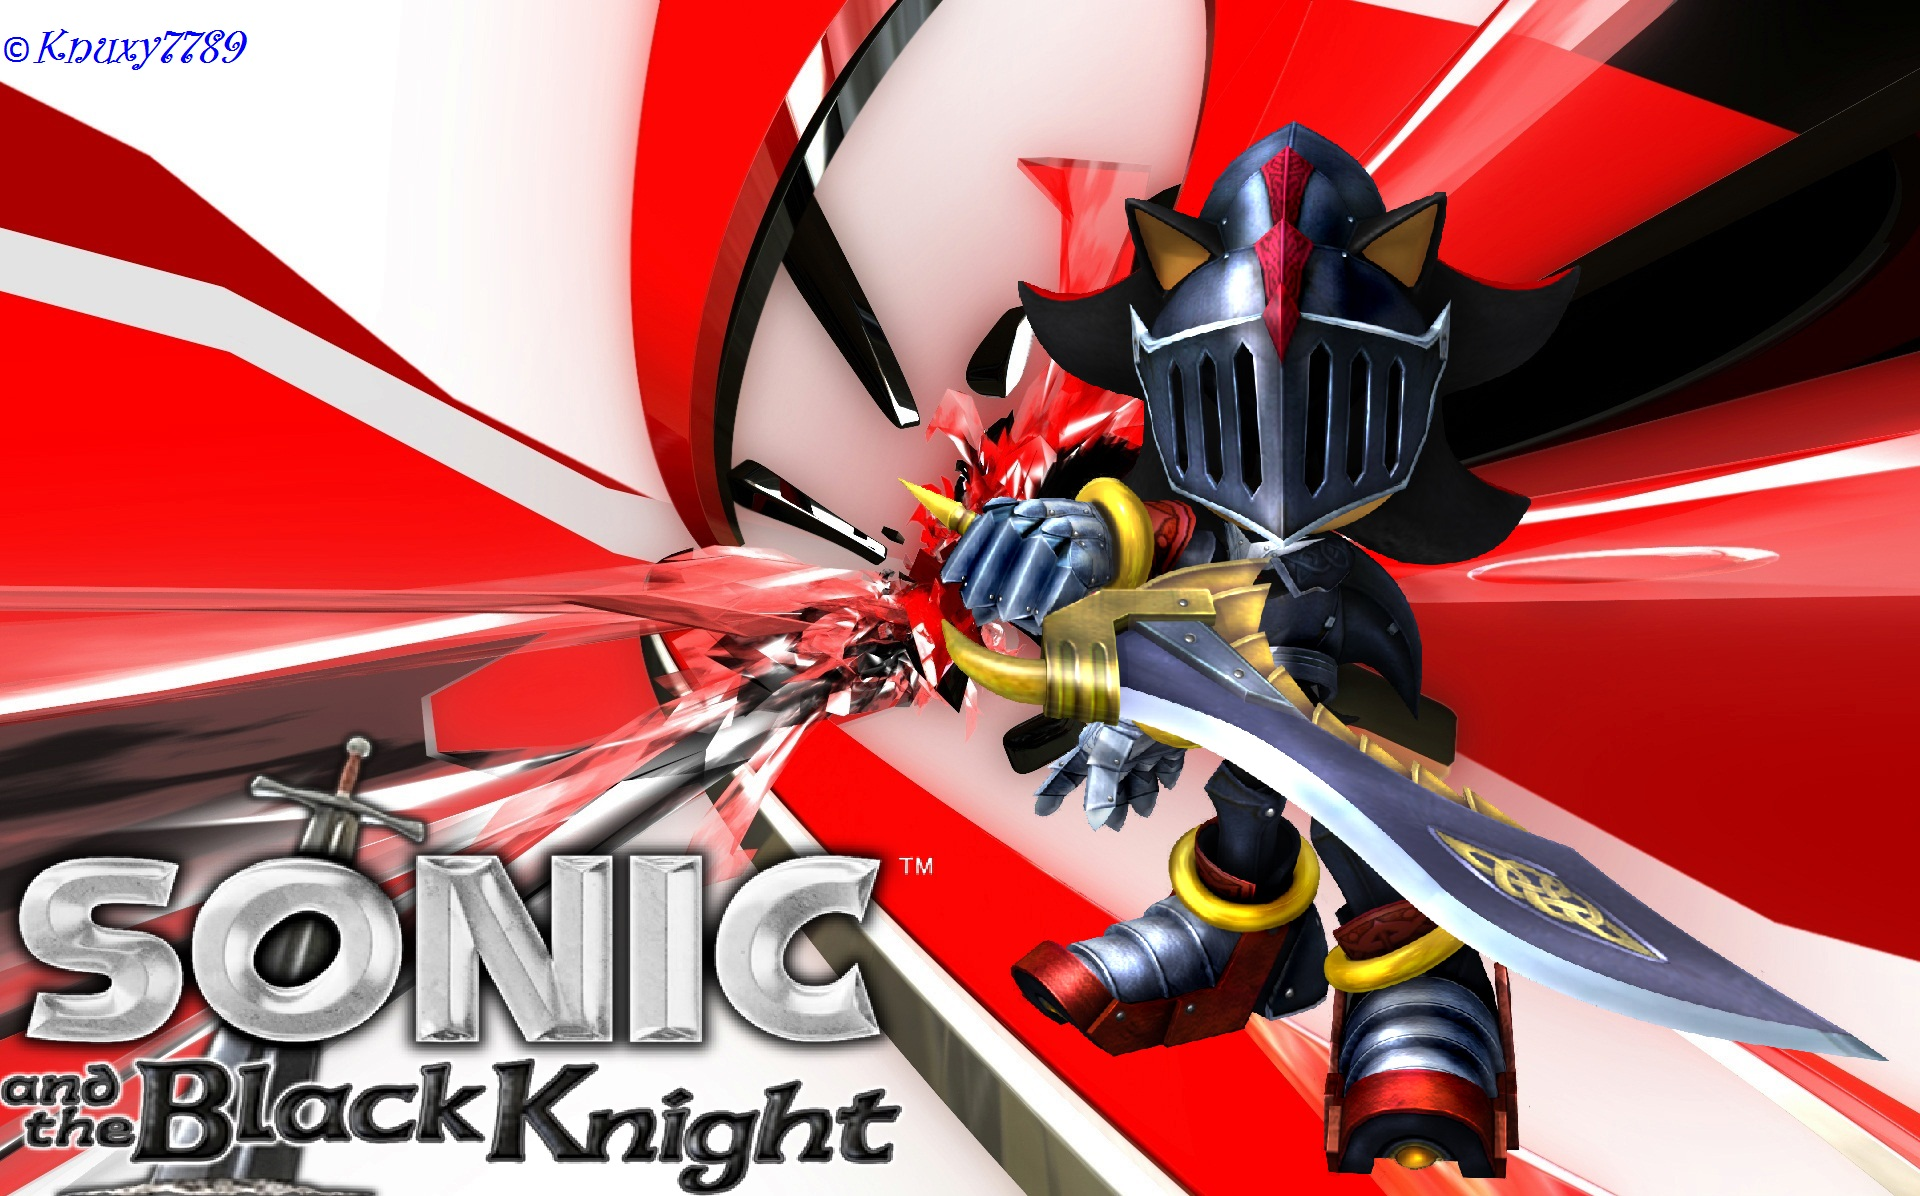 Sonic And The Black Knight Sir Lancelot By Knuxy7789 On Deviantart